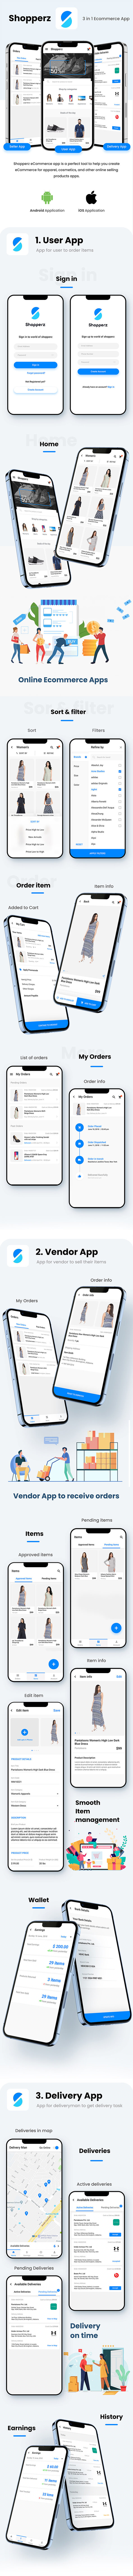 Ecommerce Android + iOS App Template (HTML + CSS files in IONIC 3) | Shopperz - 5